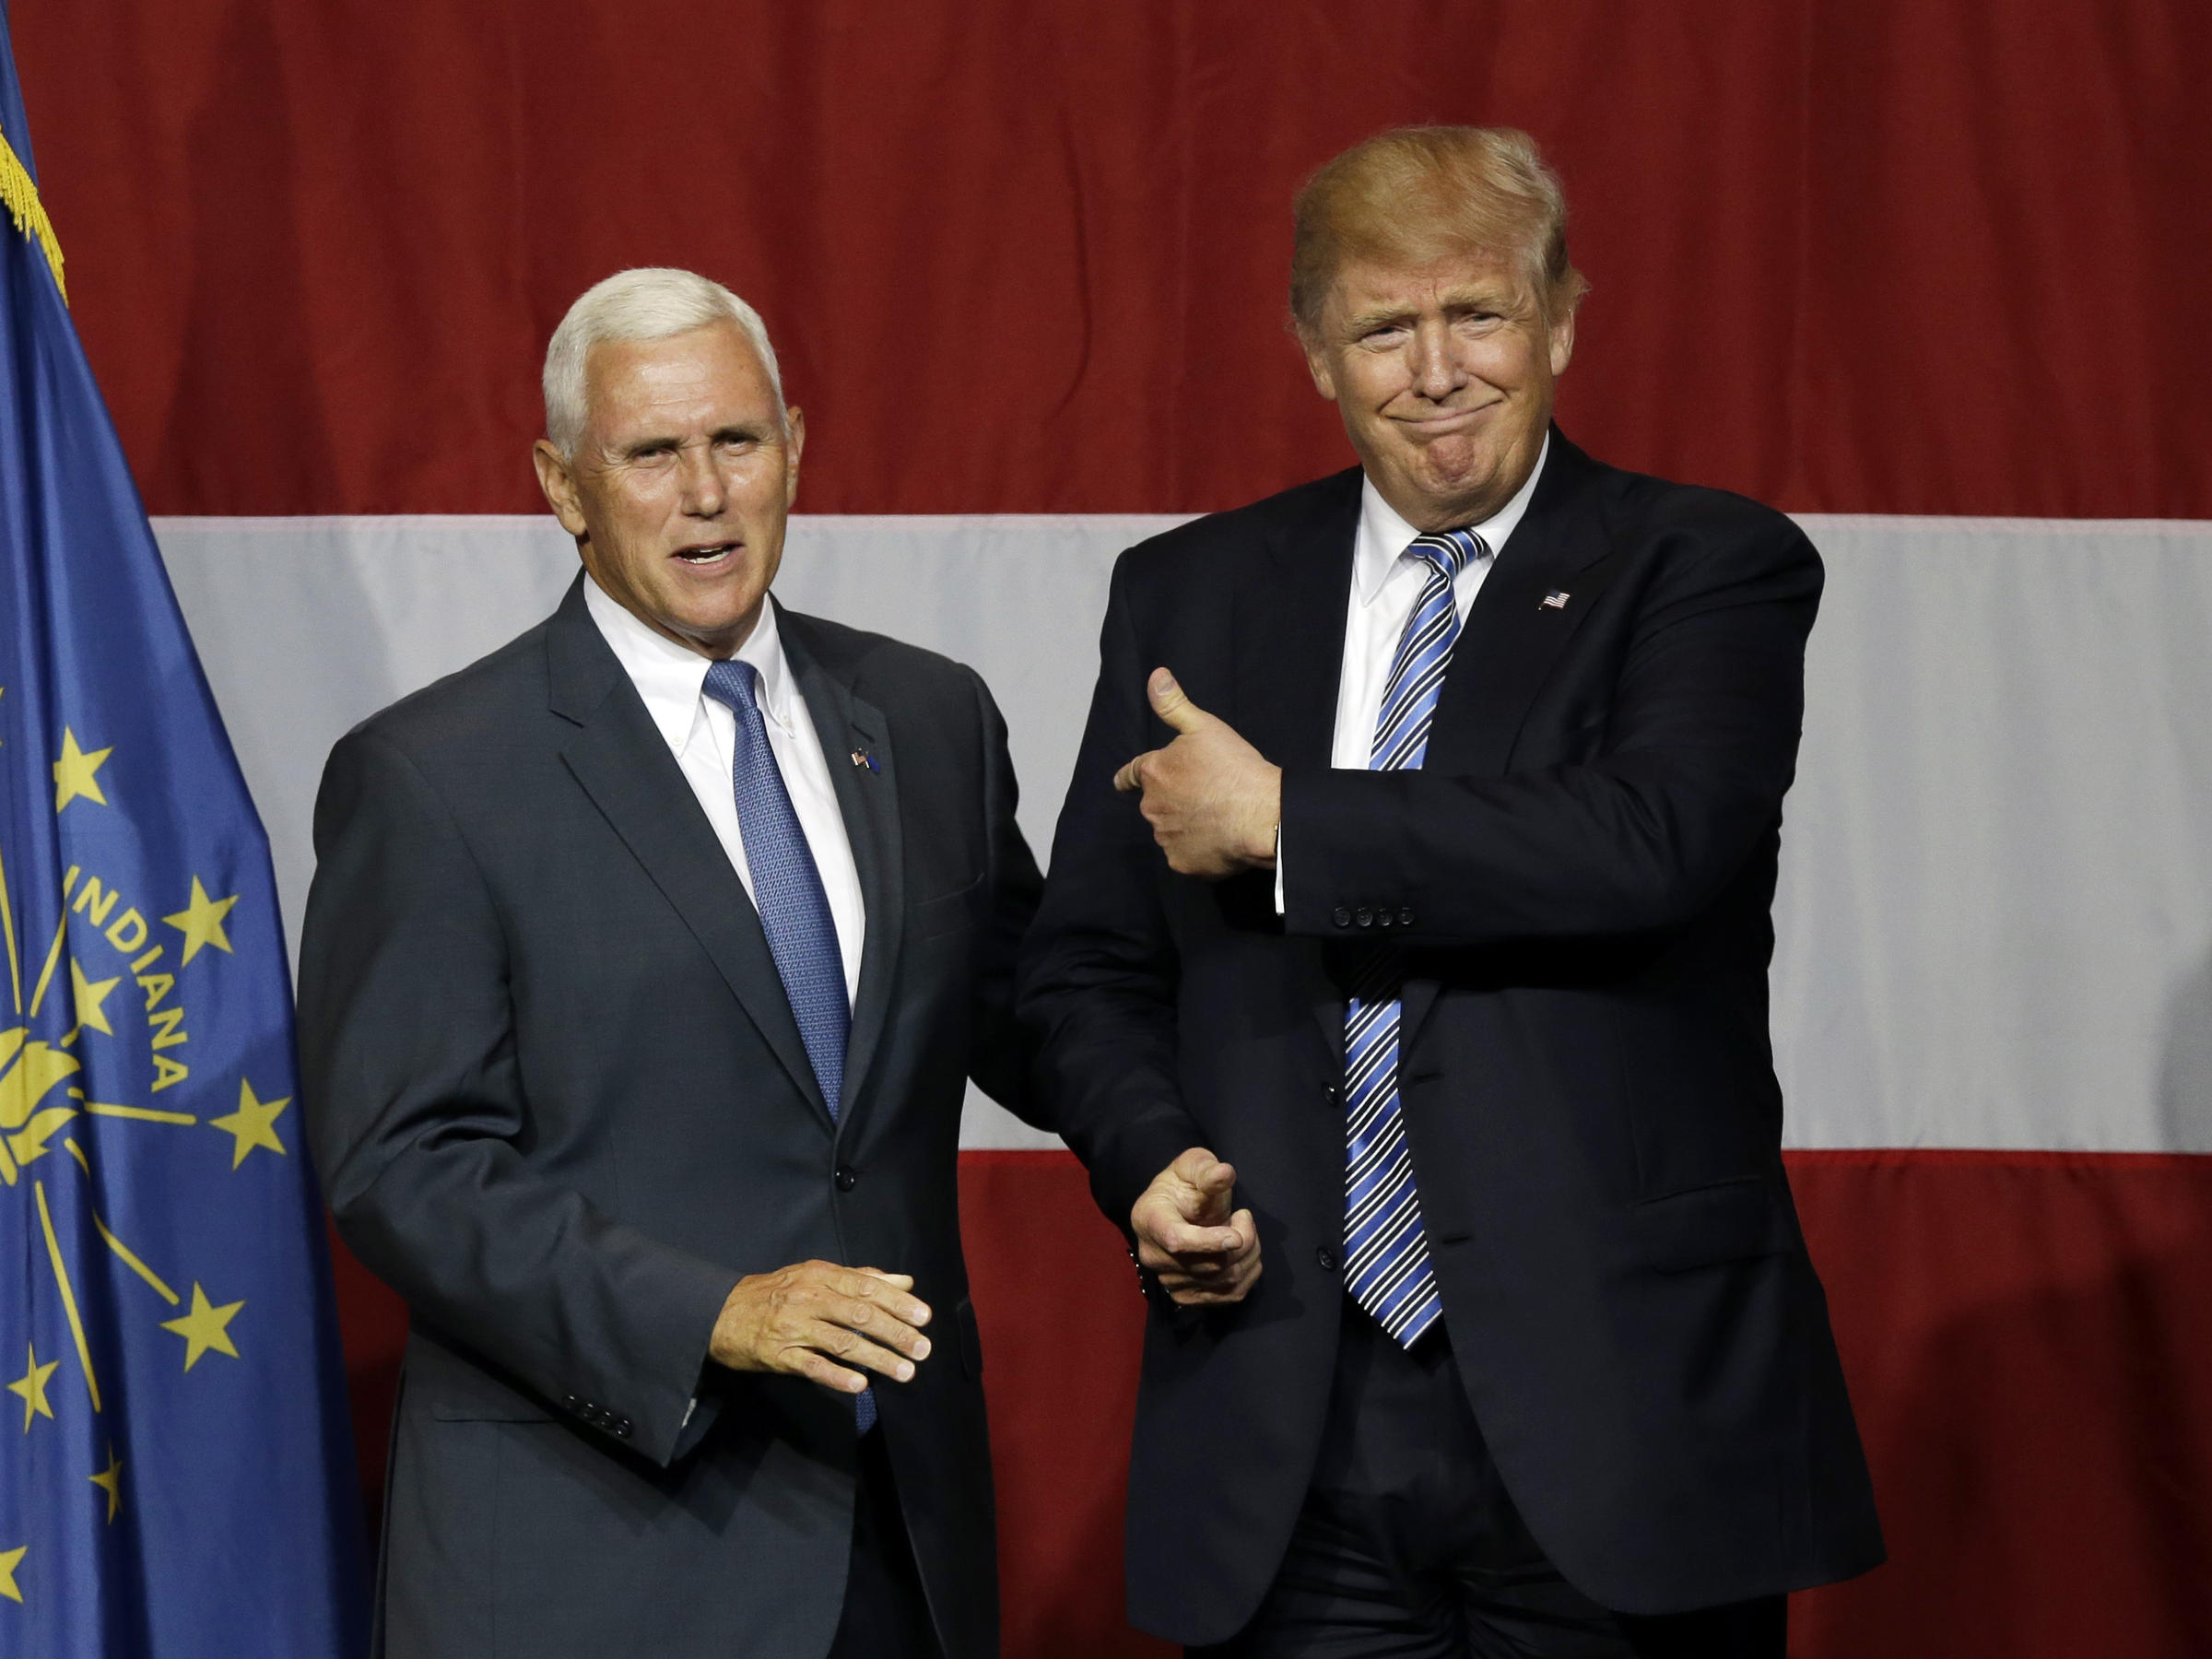 Mike Pence Accepts Trump's Offer to Run Election as Vice President